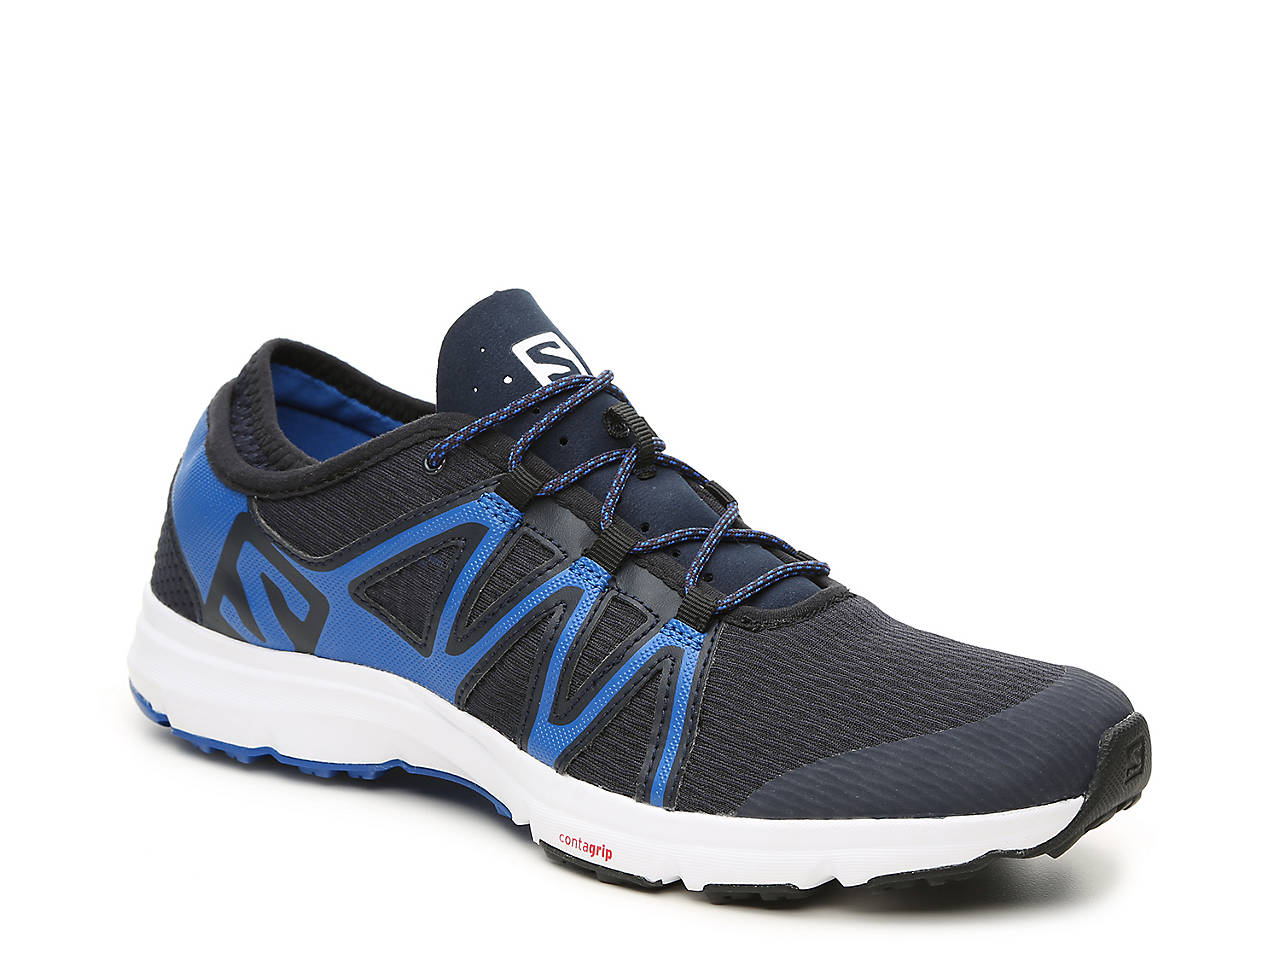 Salomon Running / Trail CROSSAMPHIBIAN SWIFT Estilo De Moda sipDS